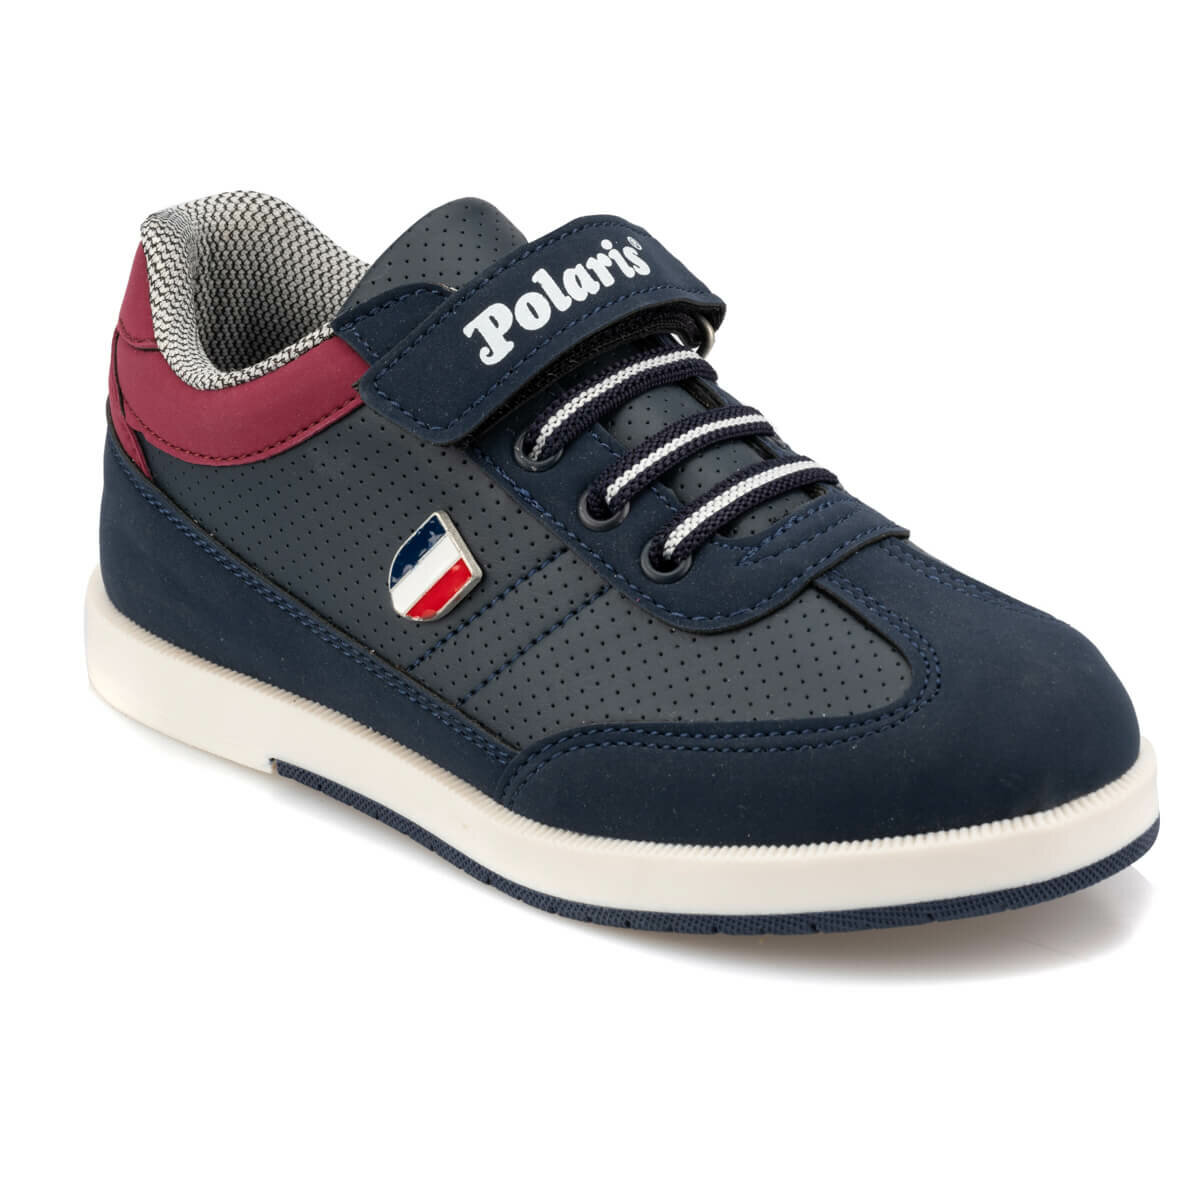 FLO 92.511865.F Navy Blue Male Child Shoes Polaris